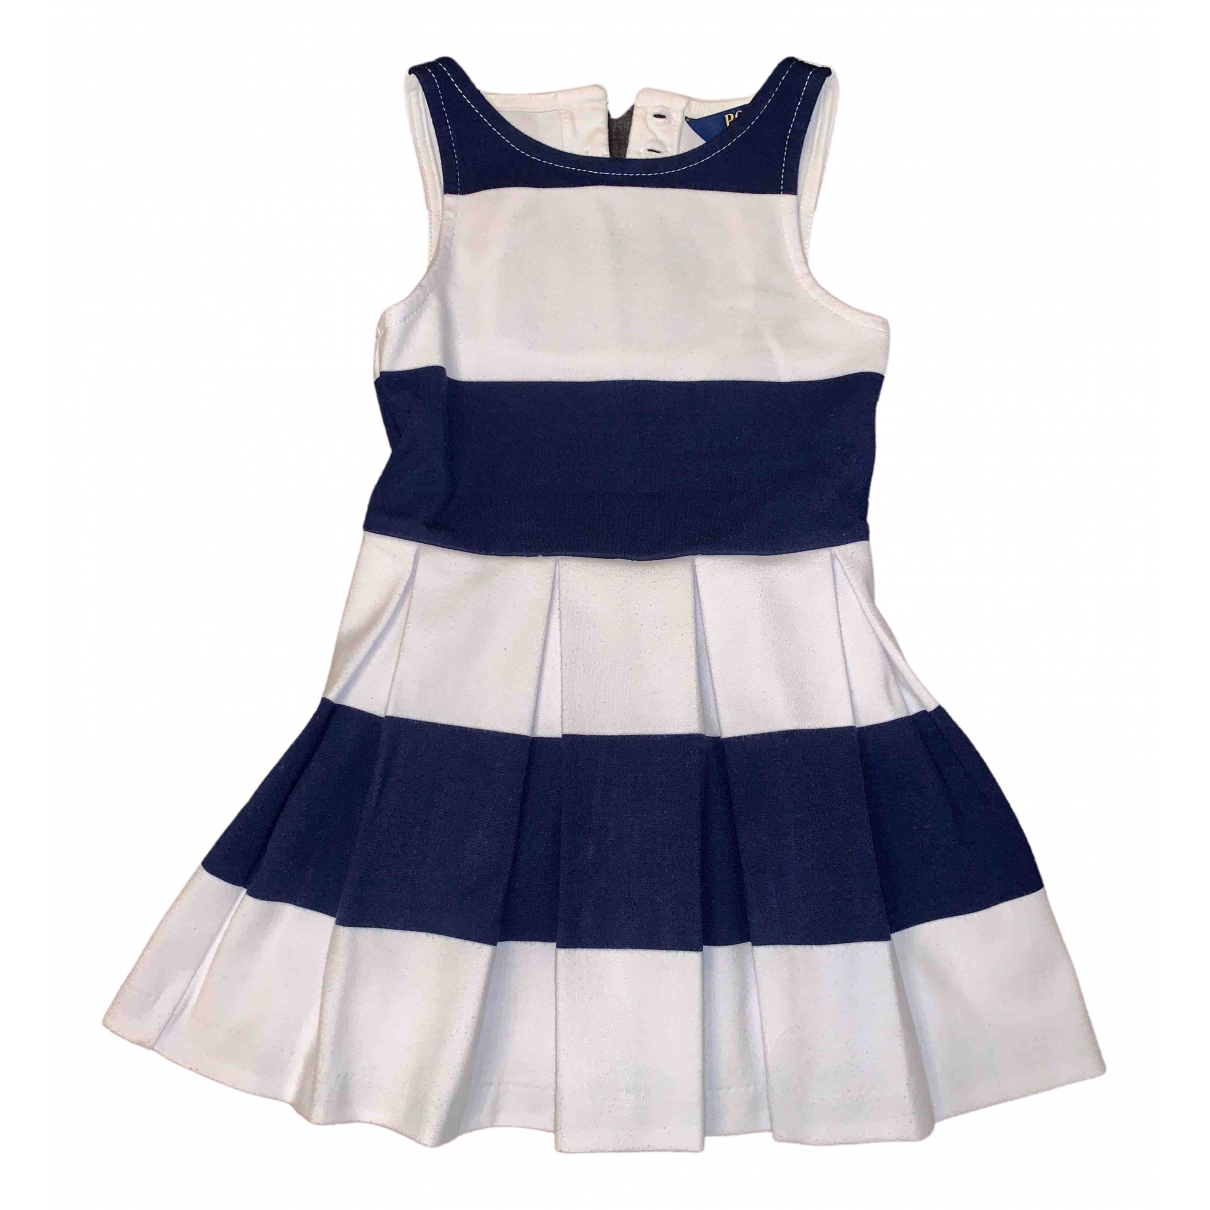 Polo Ralph Lauren \N dress for Kids 4 years - up to 102cm FR